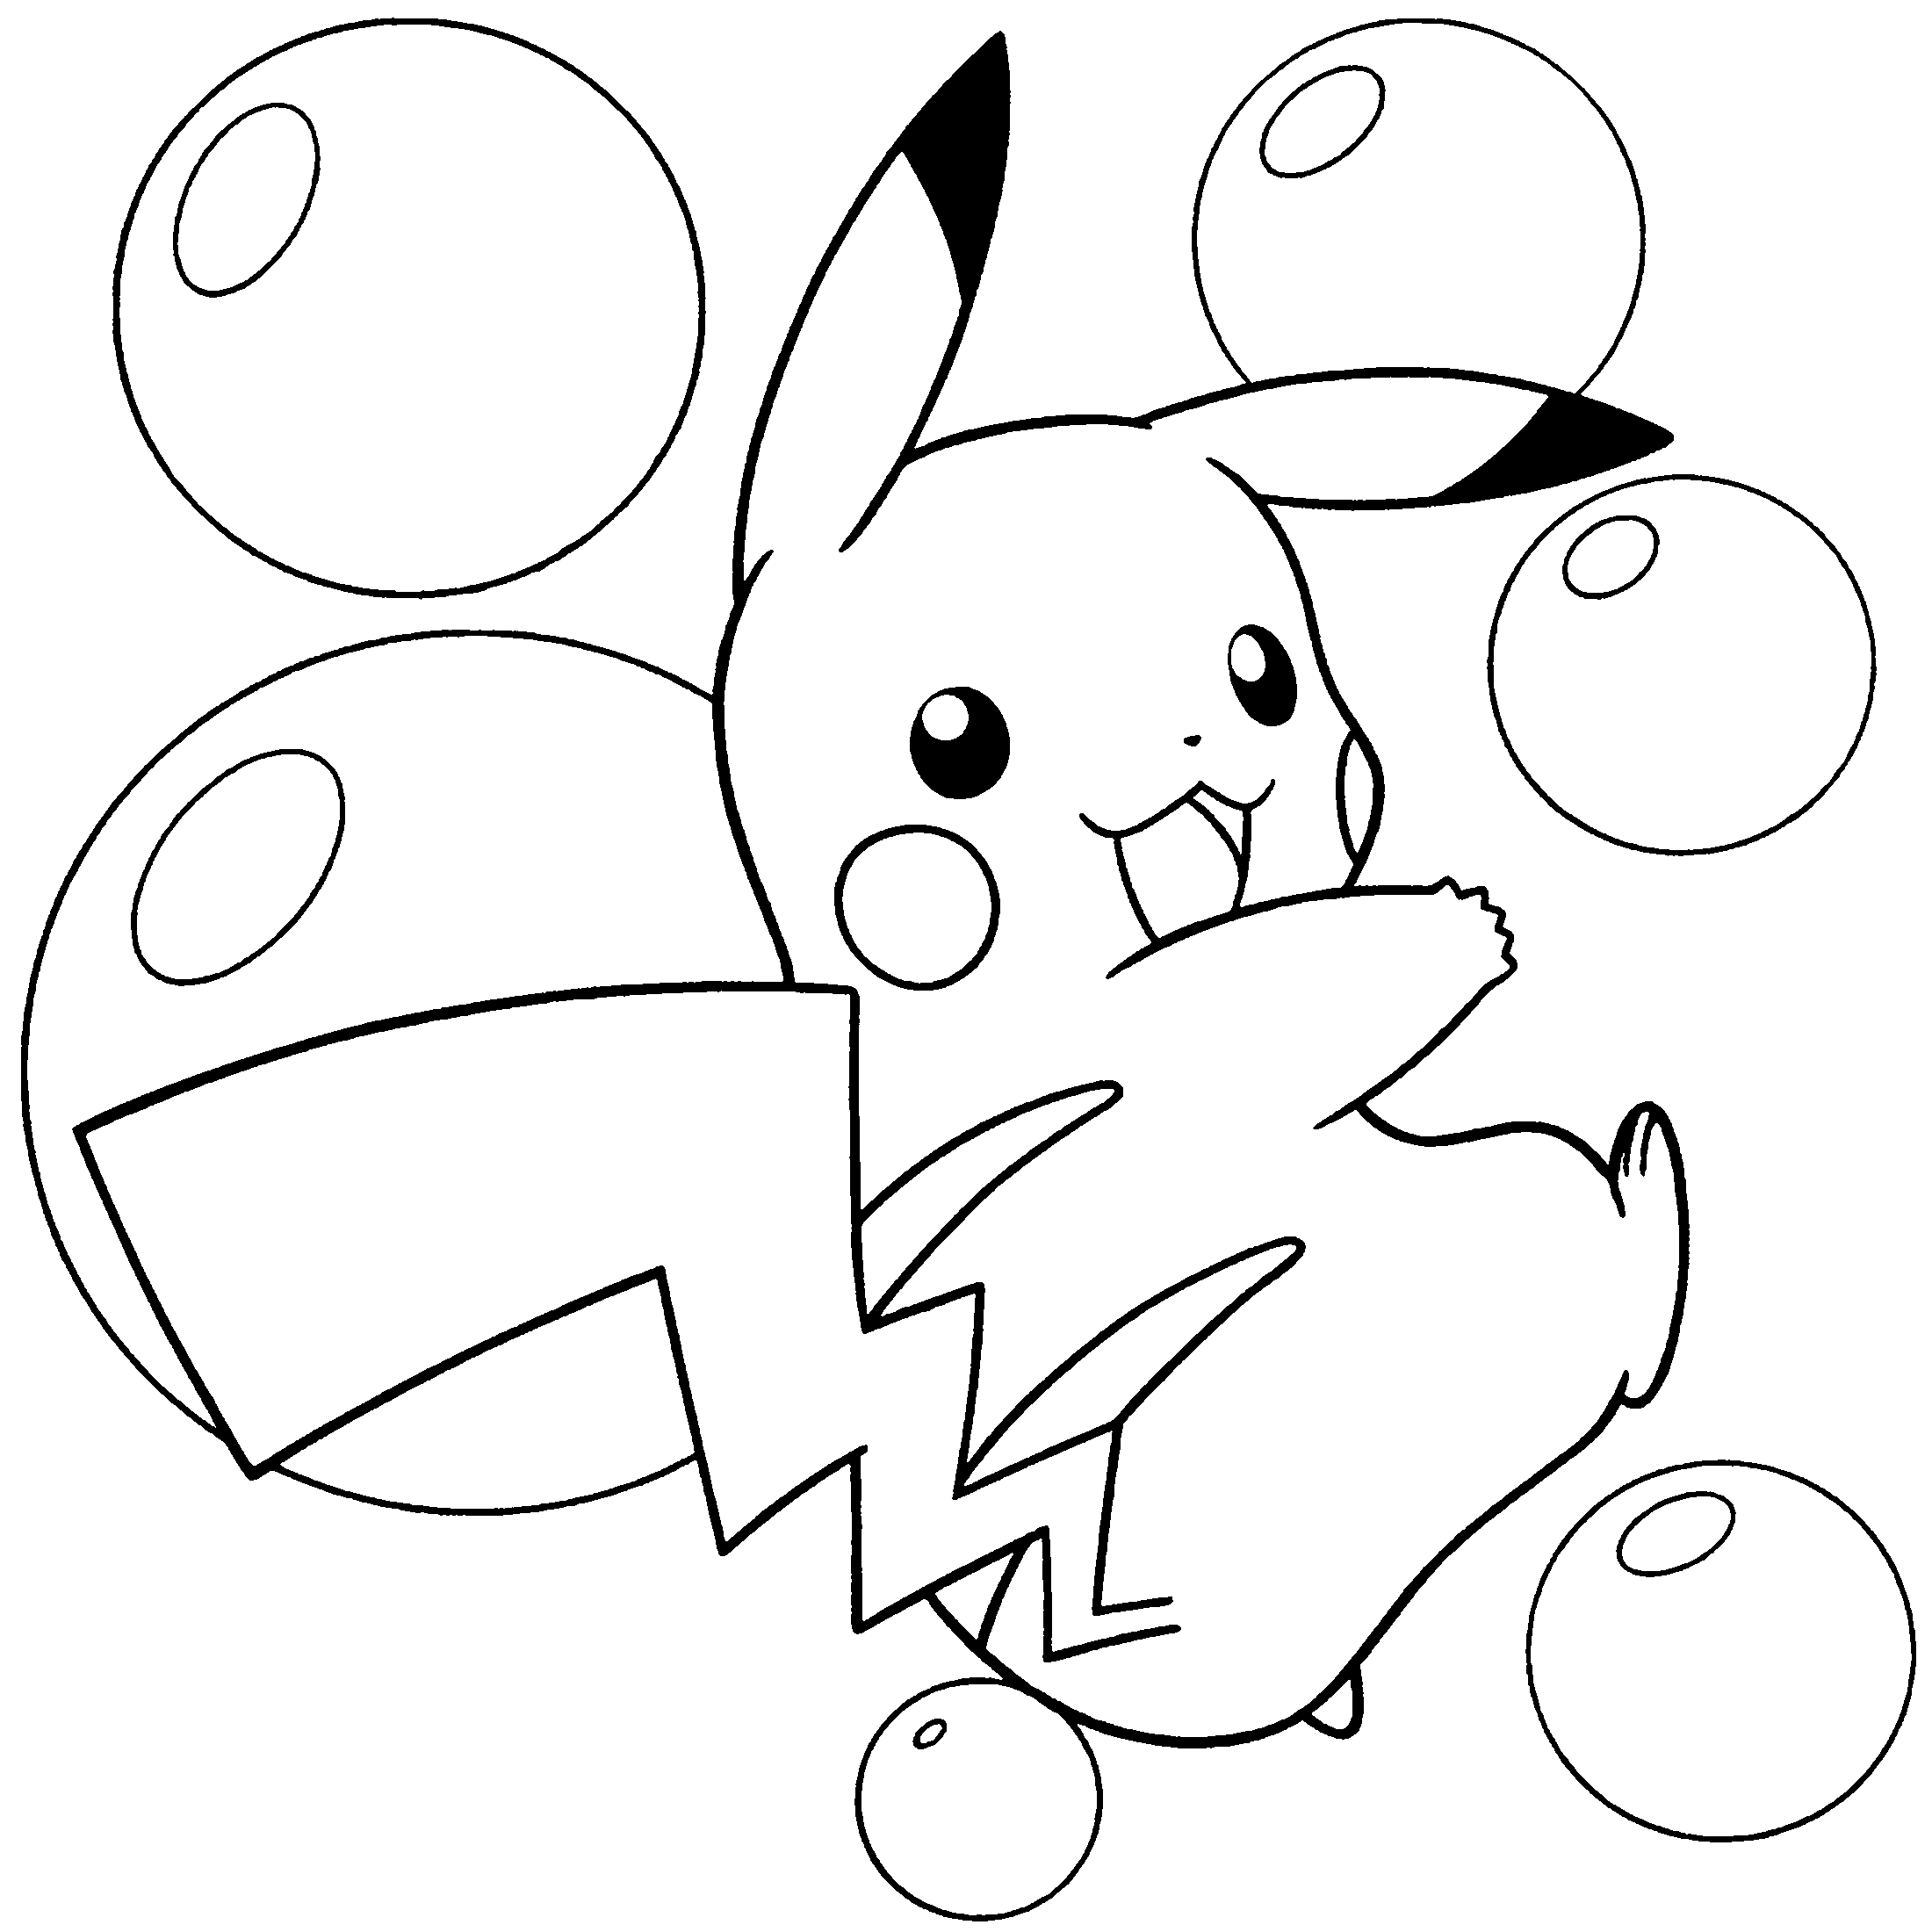 Pokemon Glumanda Ausmalbilder : Pokemon Diamond Pearl Coloring Pages 116 Png 2200 2200 Coloring